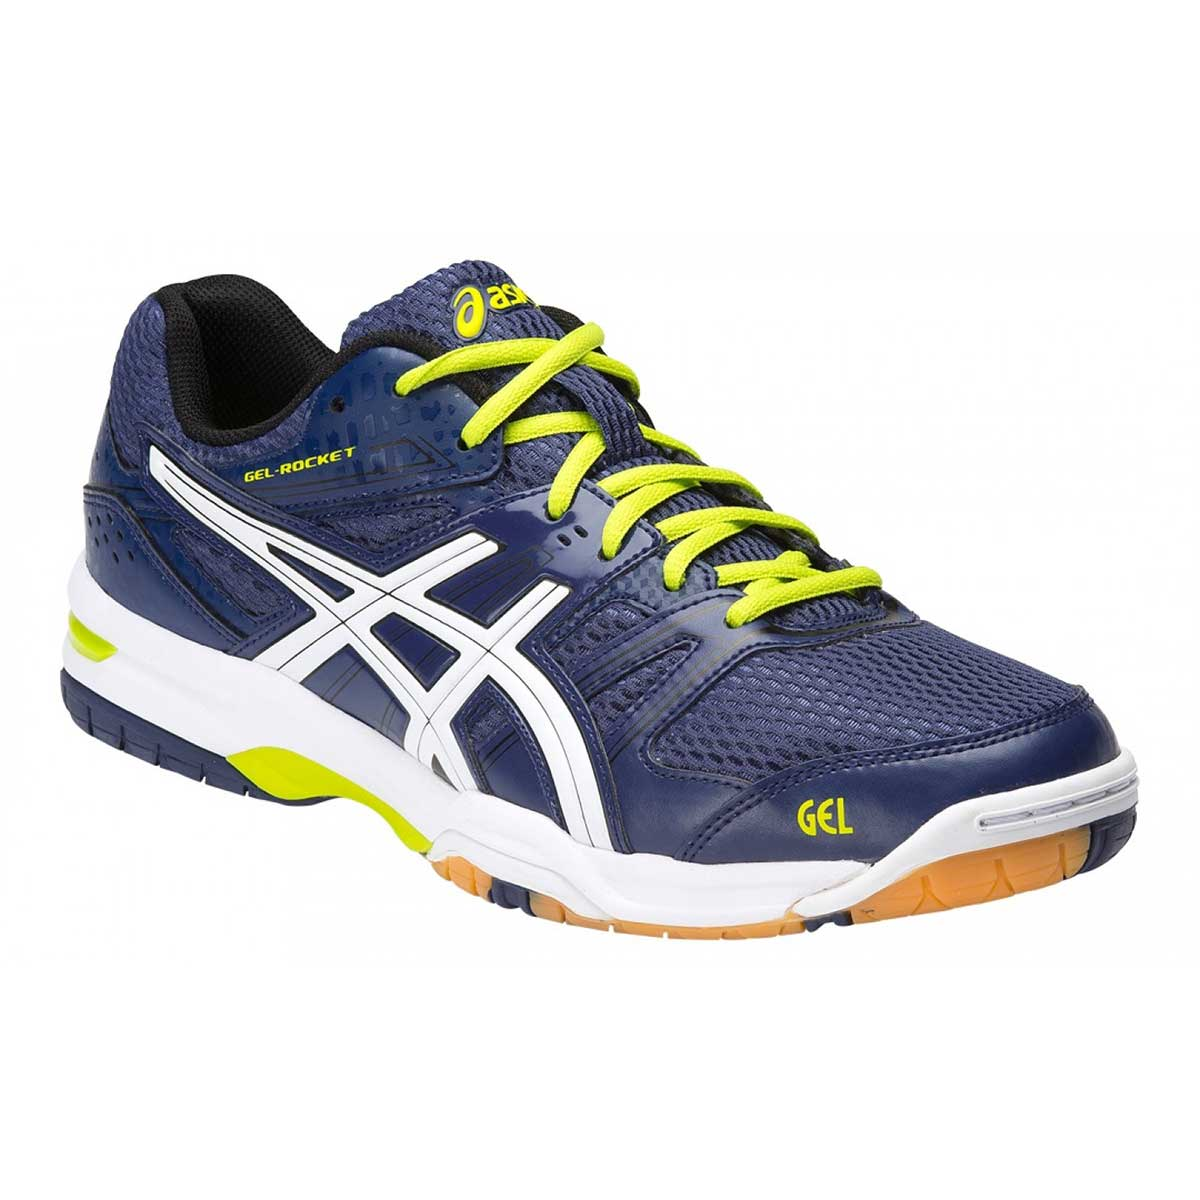 buy asics online from